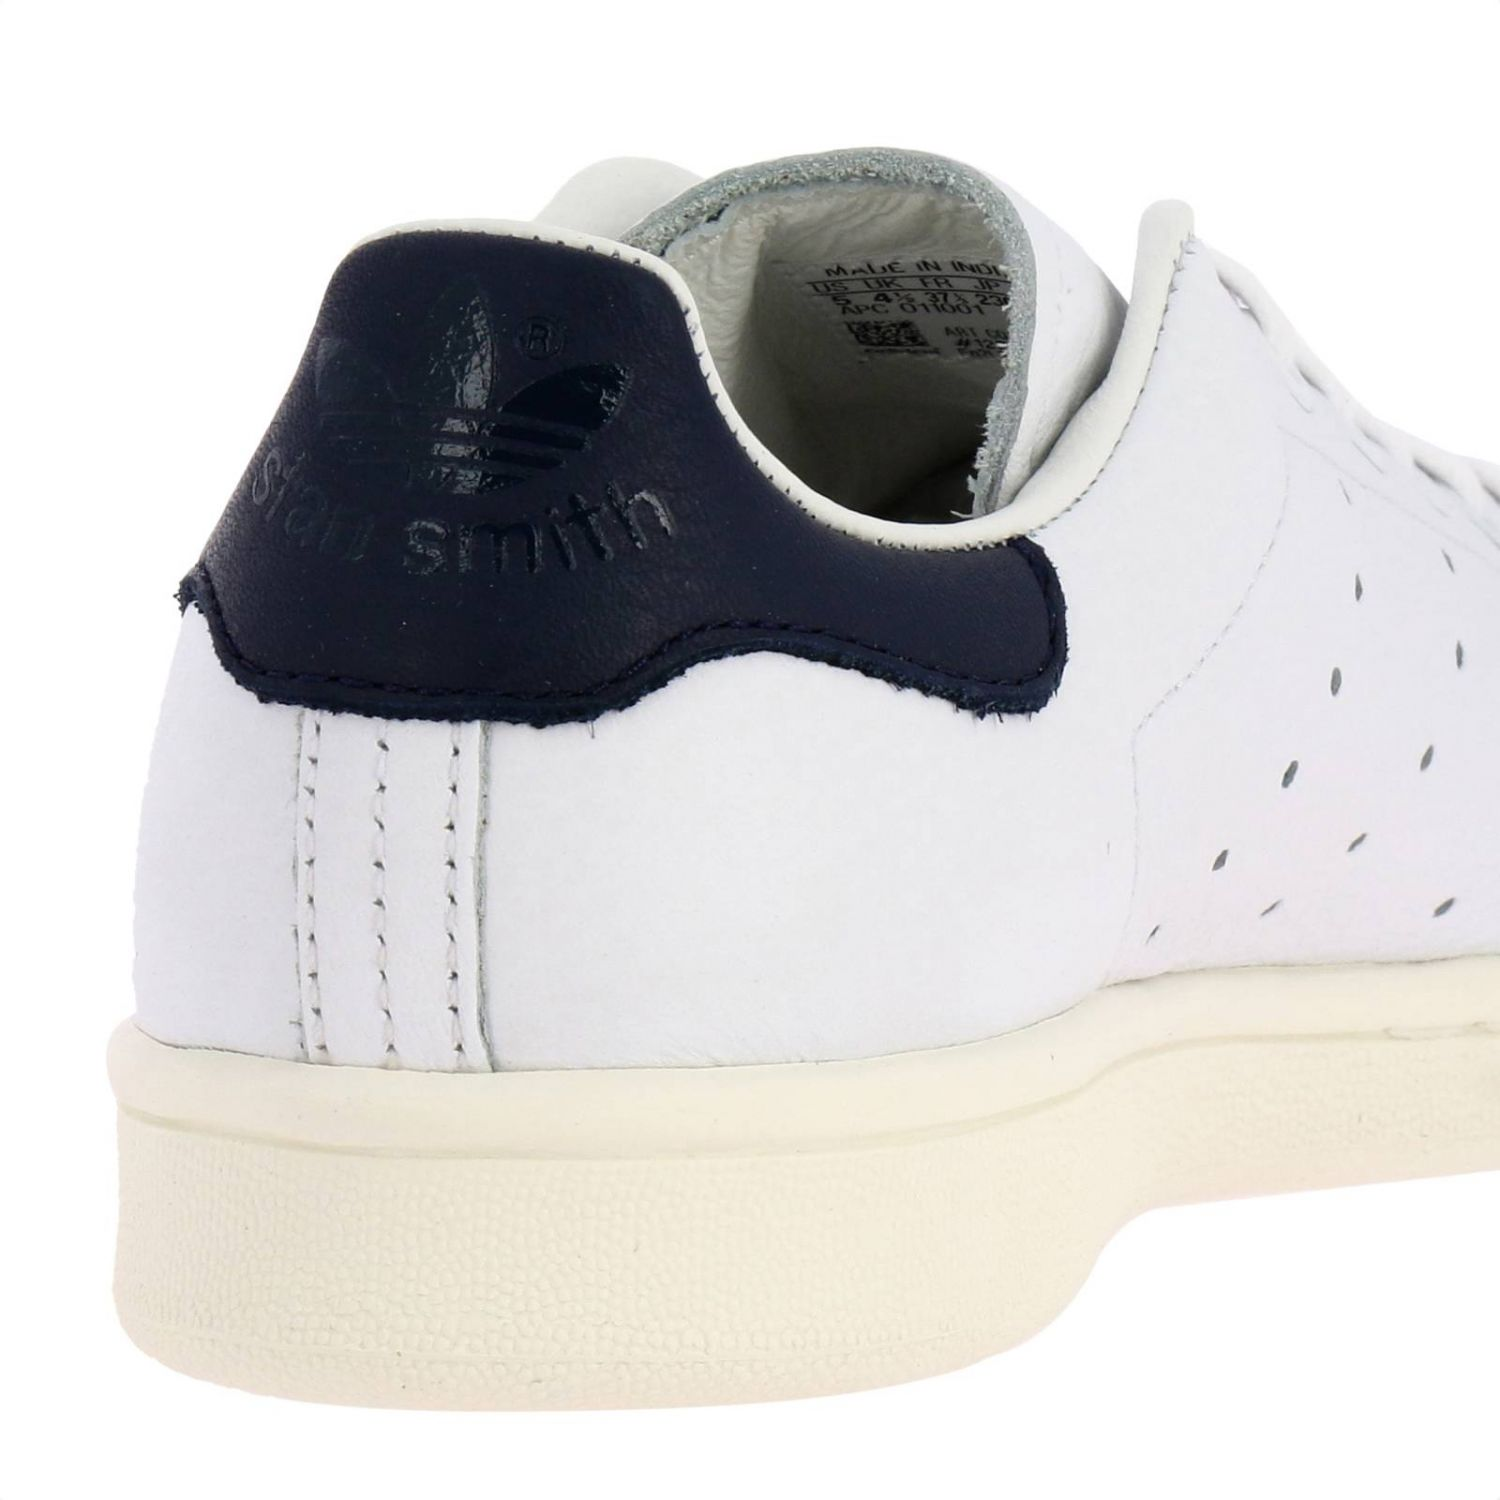 Sneakers Adidas Originals: Sneakers Stan Smith Adidas Originals in pelle con tallone a contrasto bianco 4